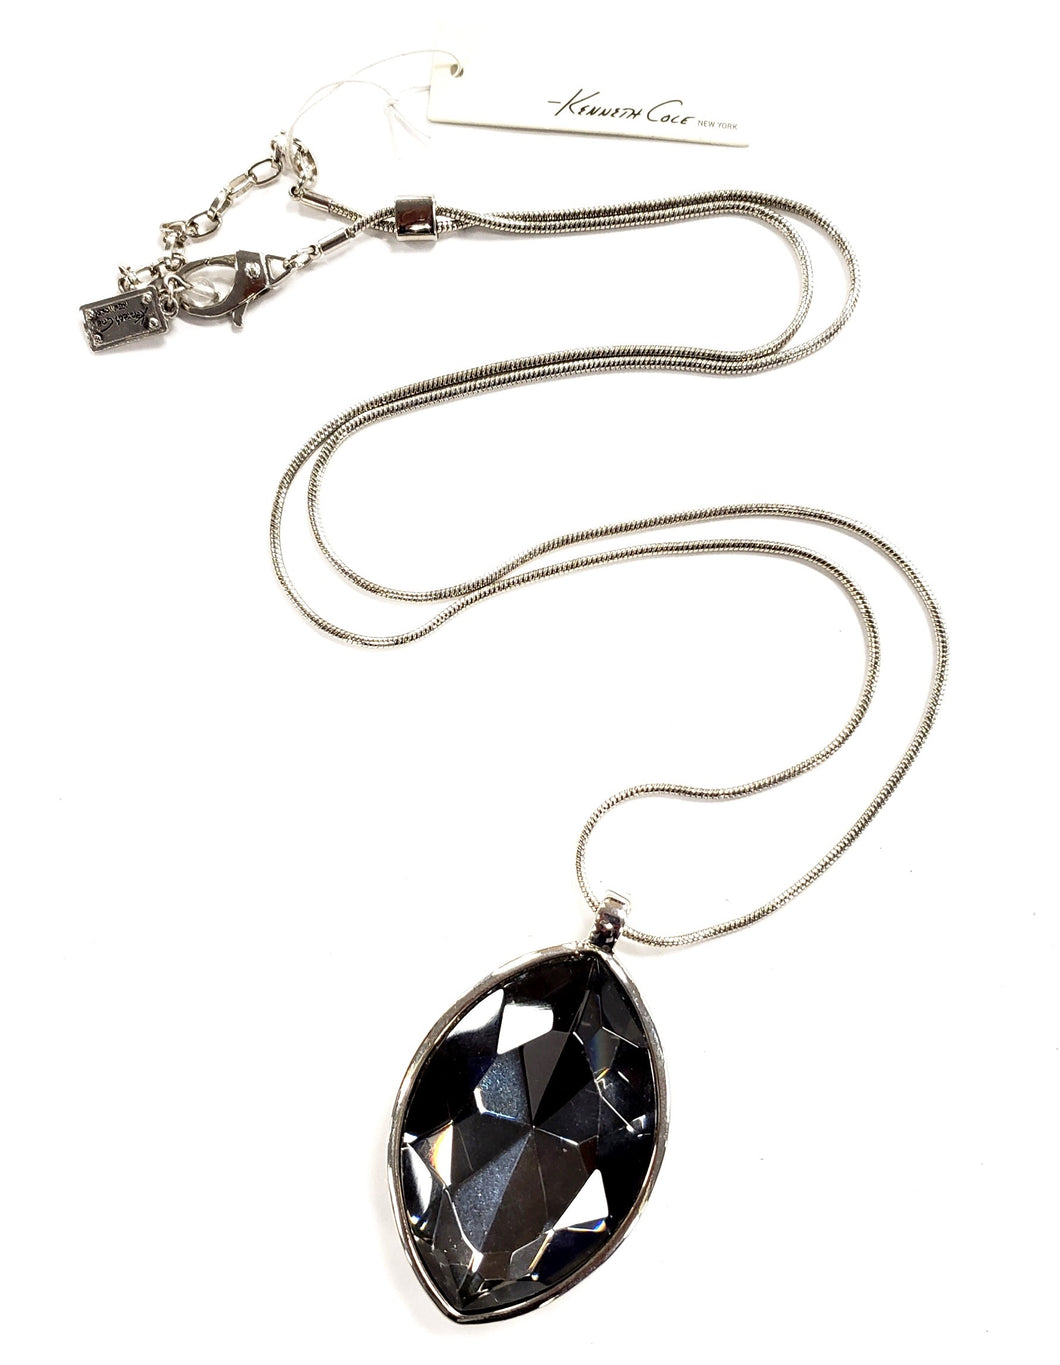 Kenneth Cole Long Crystal Teardrop Statement Pendant